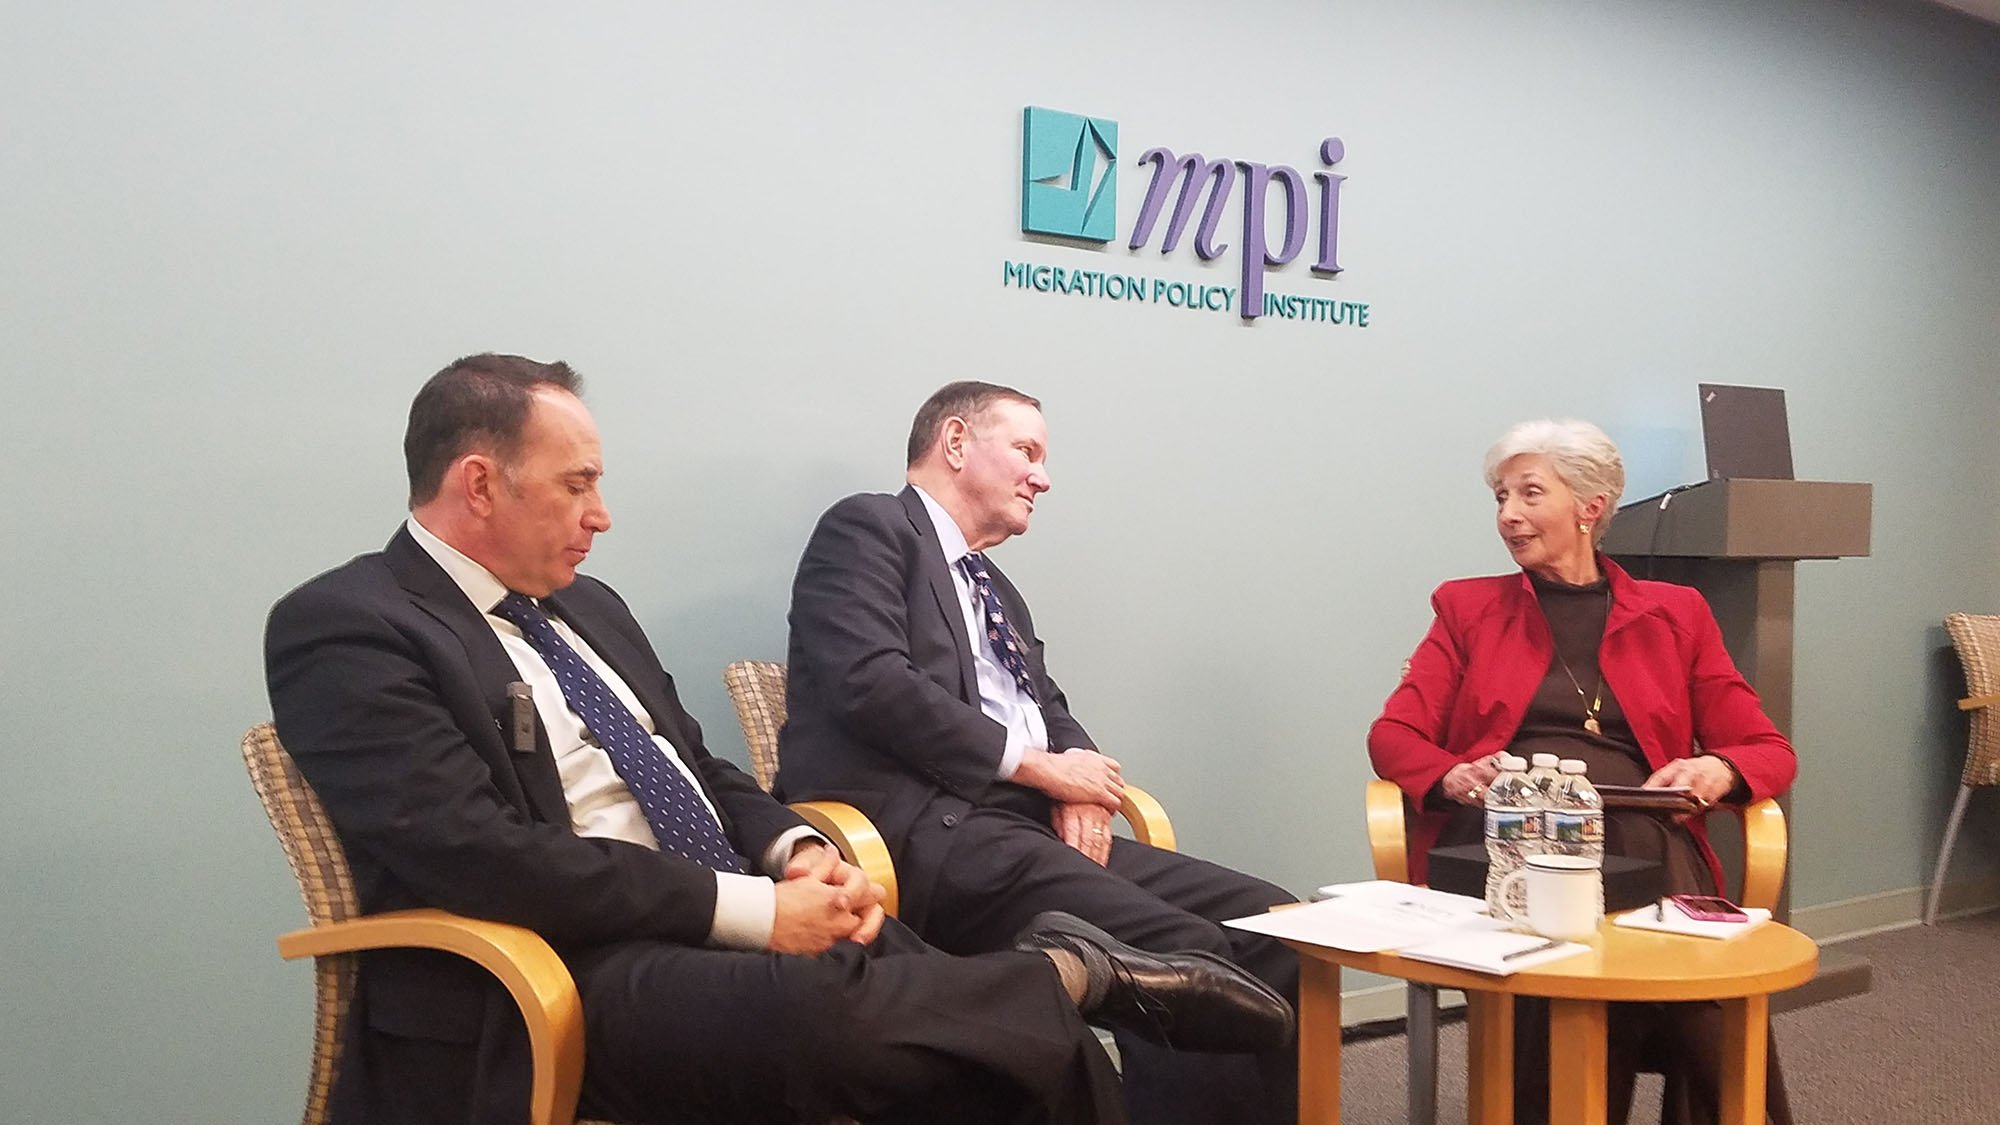 Former Arizona Gov. Janet Napolitano spoke by videoconference at the session on the future of DACA with, from left, Ike Brannon, Don Graham and the Migration Policy Institute's Doris Meissner. (Source: Dustin Quiroz/Cronkite News)